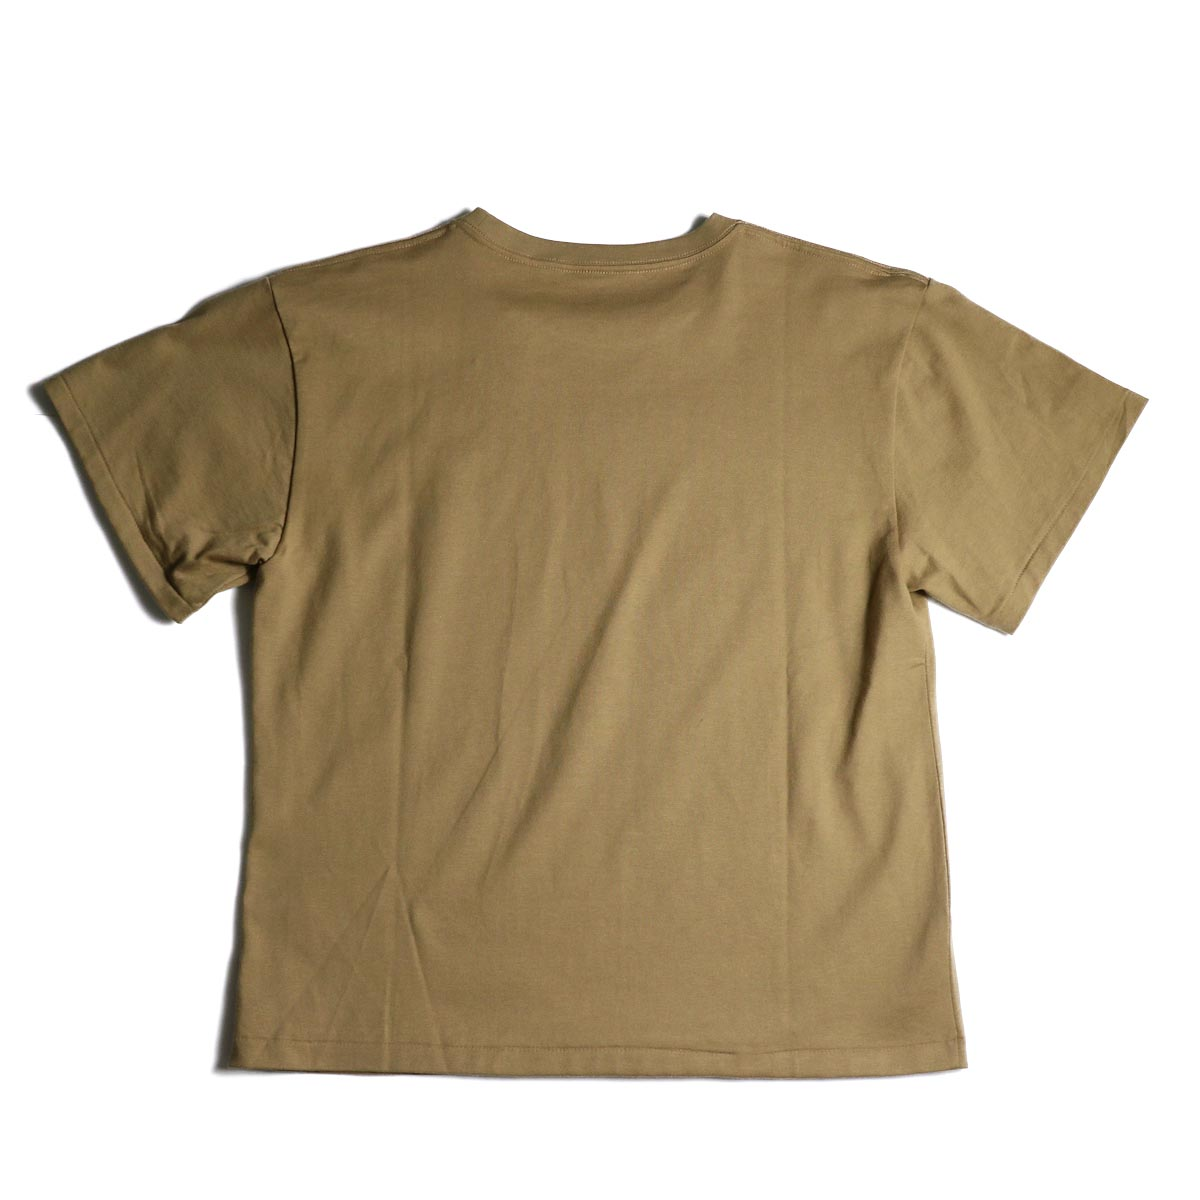 MASTER & Co. / Print T-Shrit (almond)背面